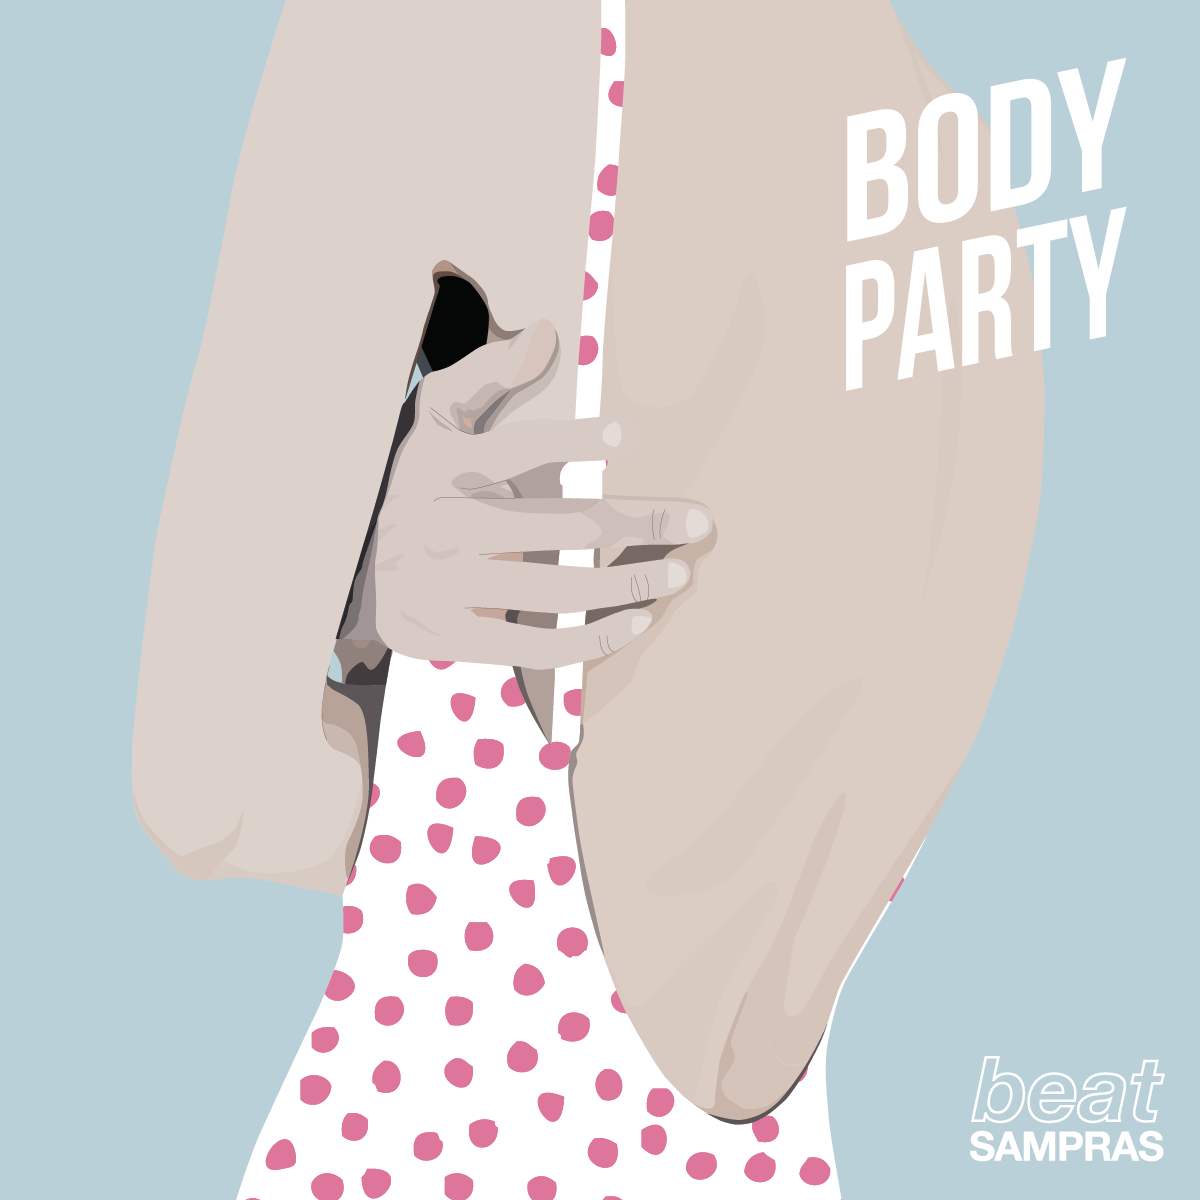 stickers-bodyparty-02.png